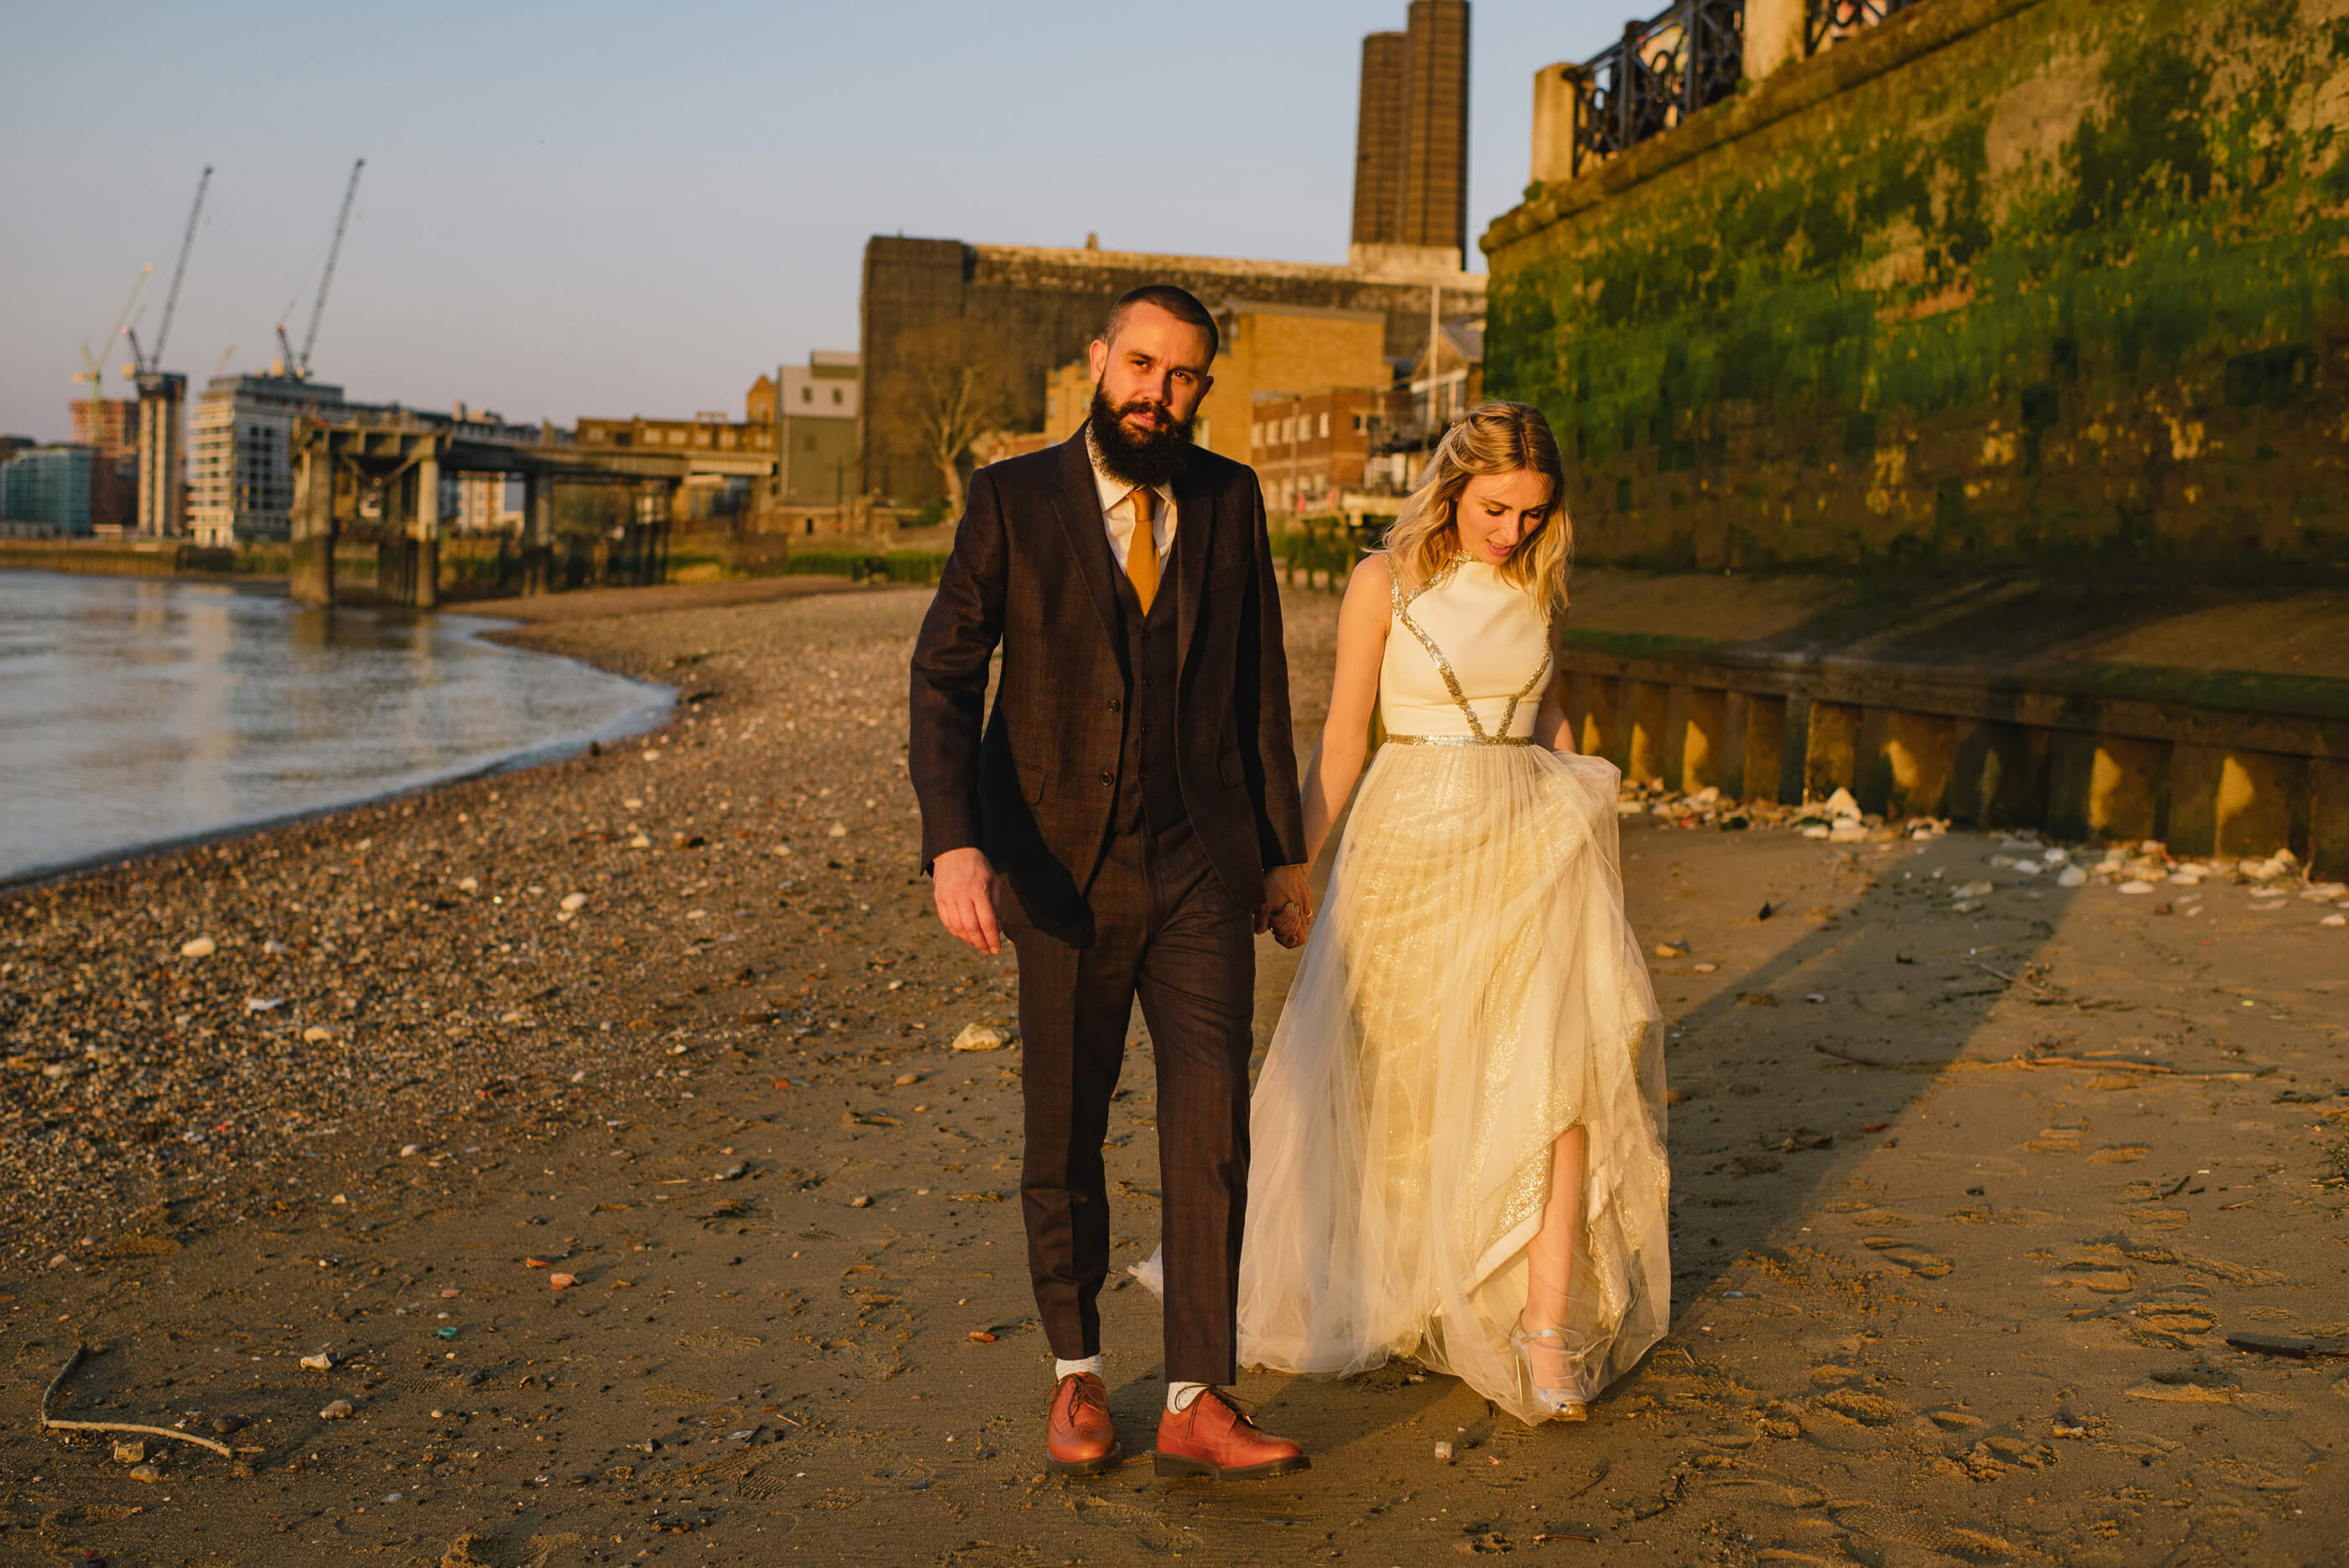 golden hour wedding photography, london weddings